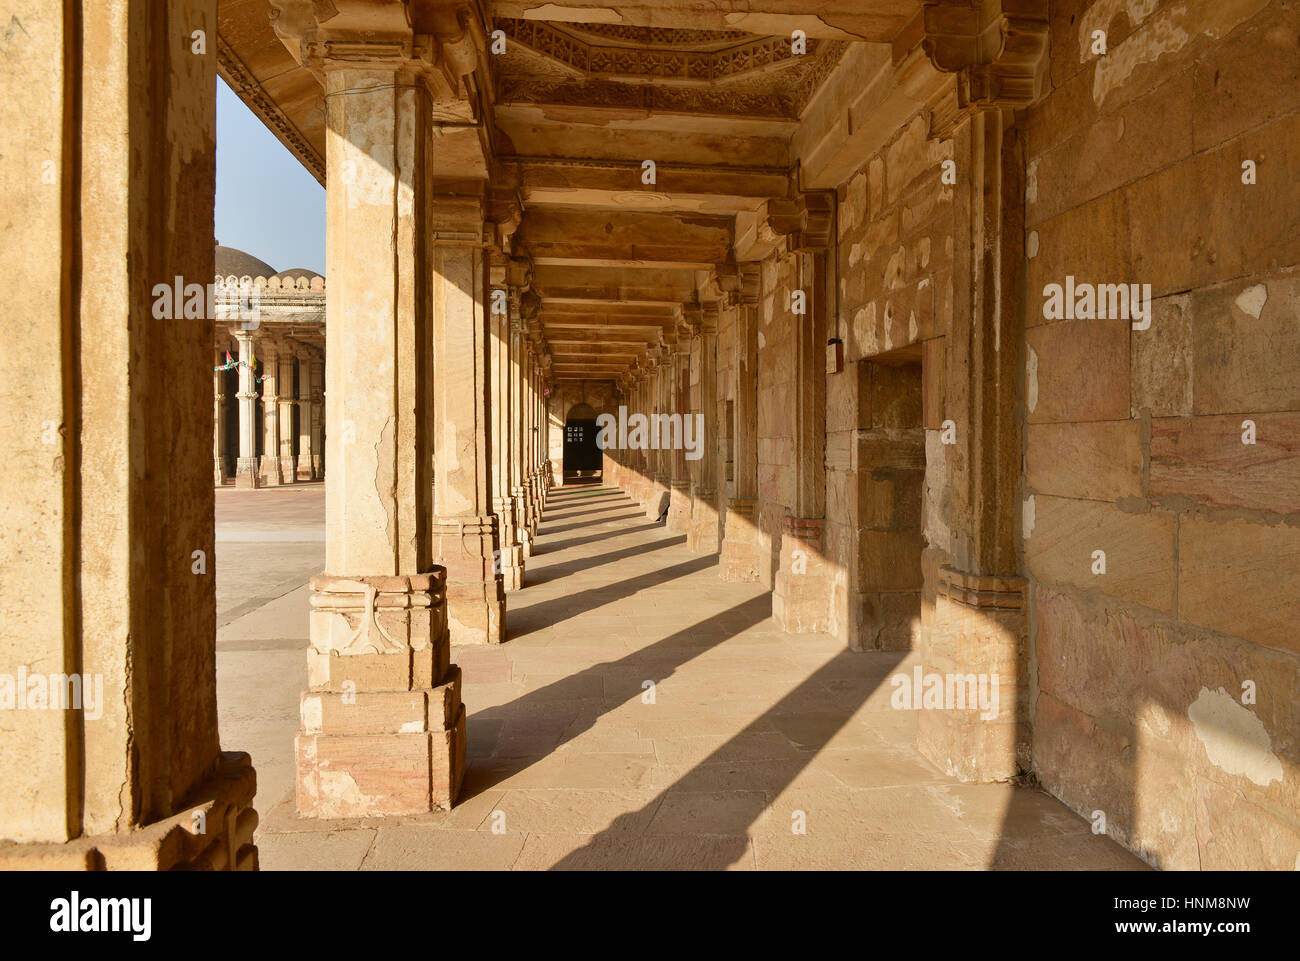 Mosque and tomb complex Sarkhej Roza is a located in the village of Makaraba, near  Ahmedabad in Gujarat state, - Stock Image